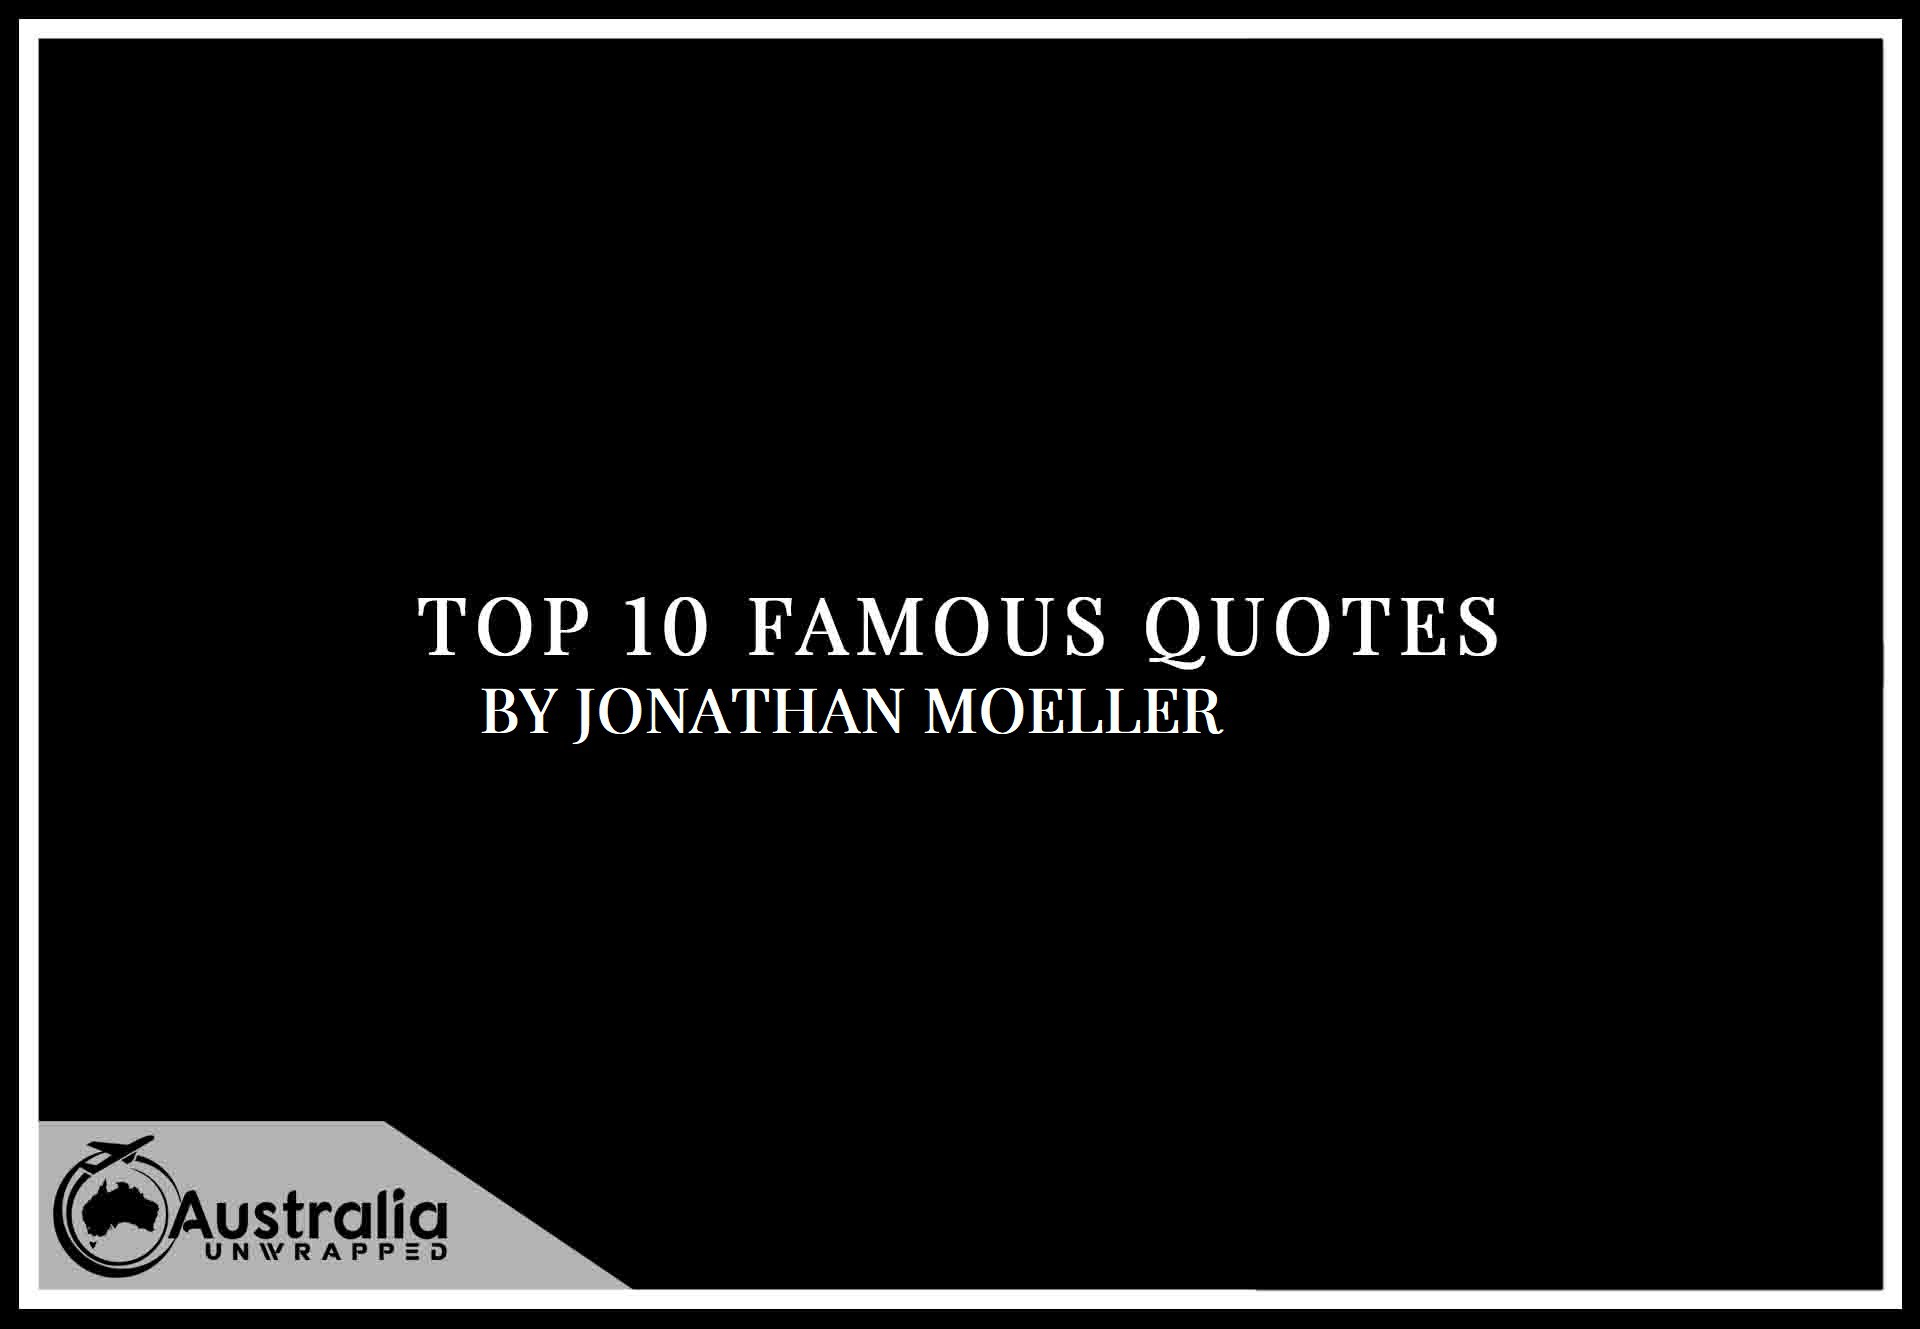 Top 10 Famous Quotes by Author Jonathan Moeller